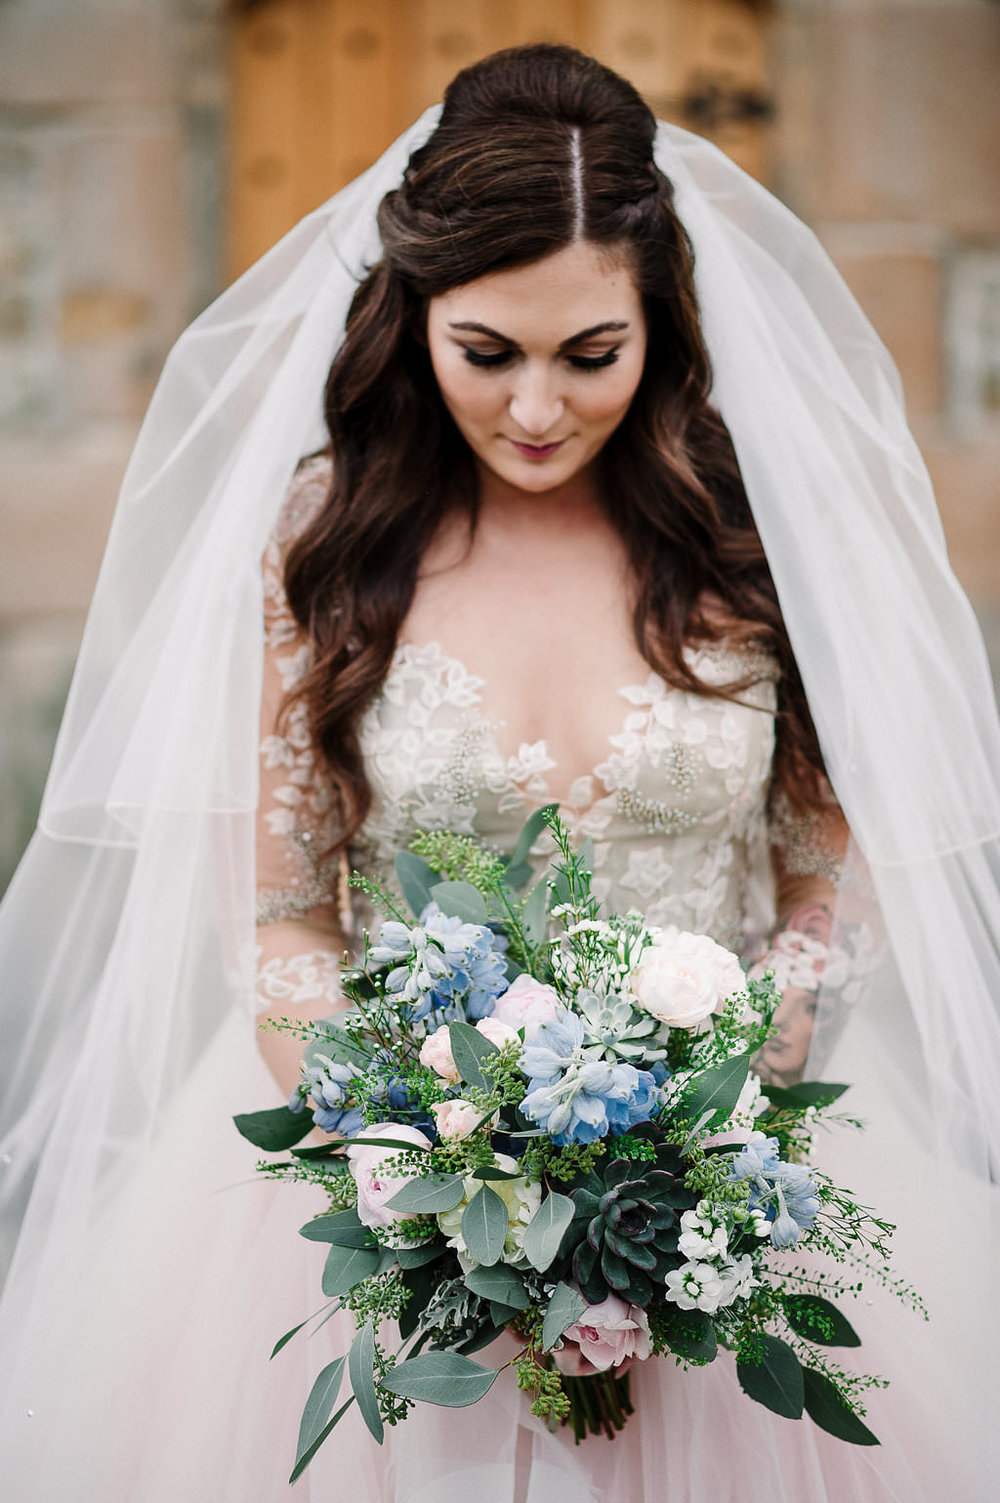 Detailed photo of wedding dress and flowers. Ribble Valley wedding